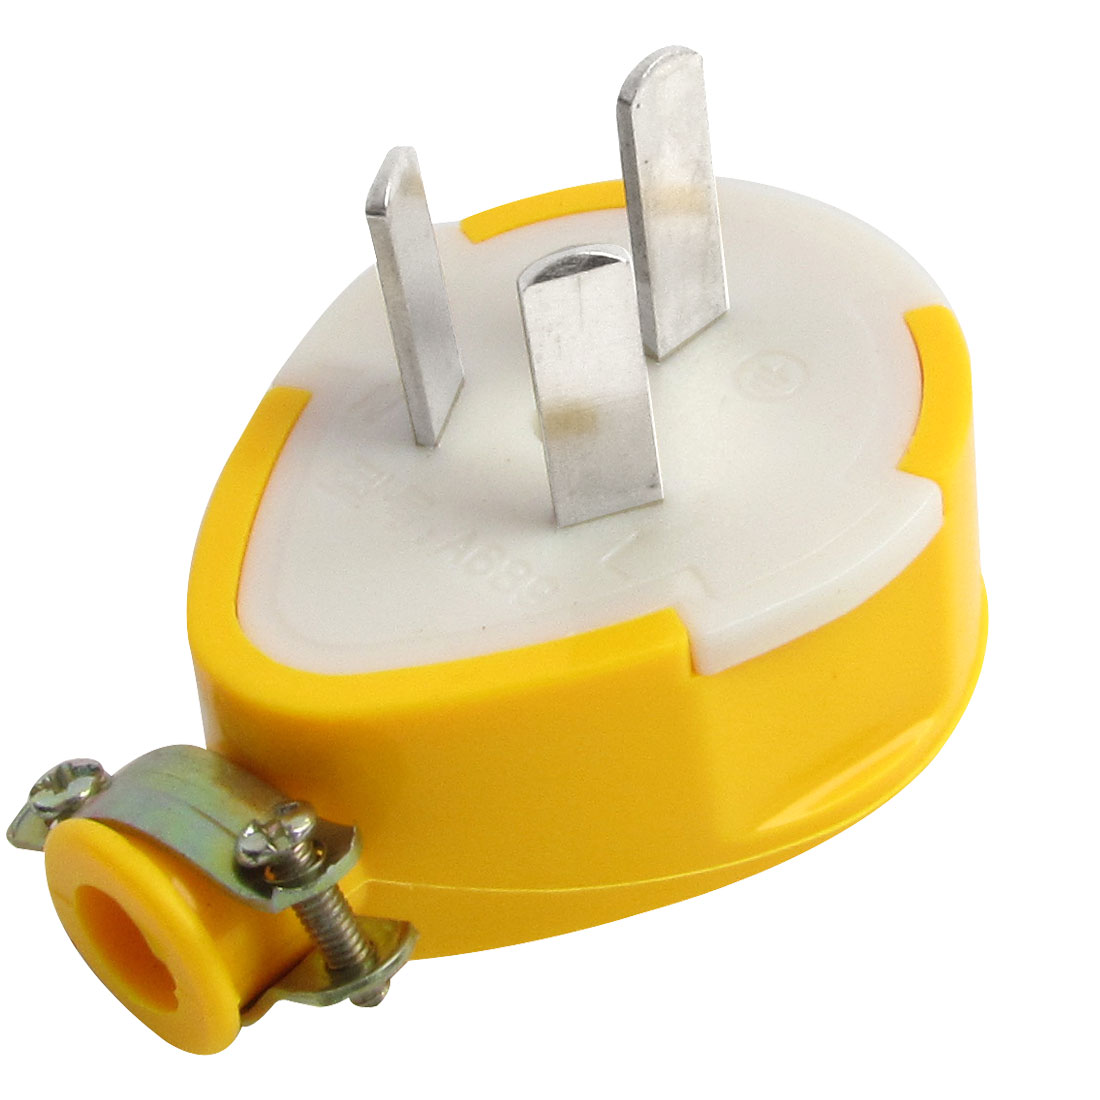 Dark Yellow Housing Power Adapter Plug Replacement 250V 13A AU Plug